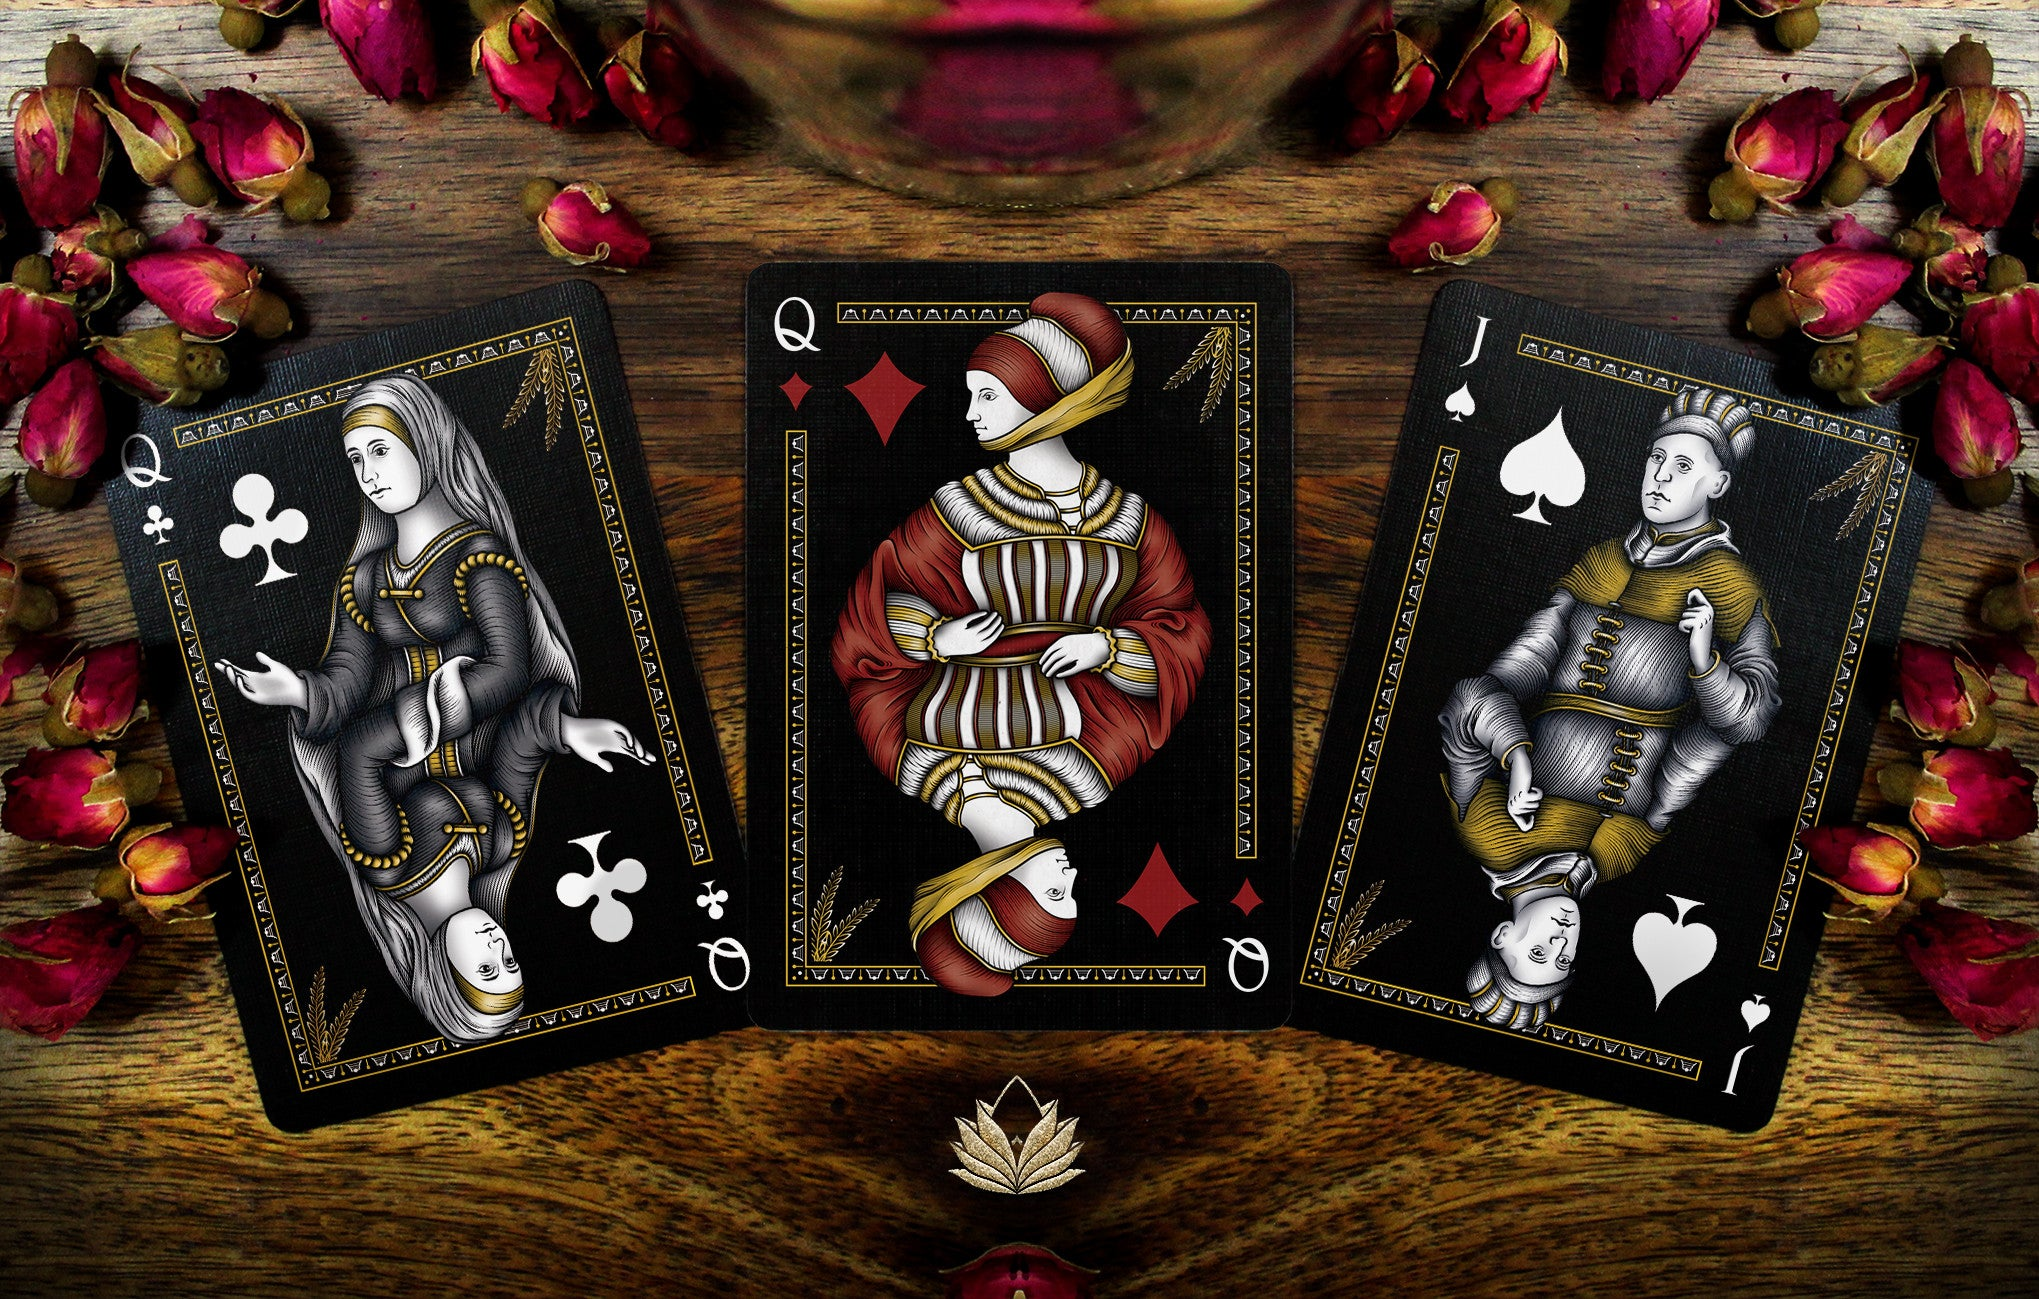 Handcrafted playing cards that inspire ponderings playing cards apothecary collection biocorpaavc Choice Image